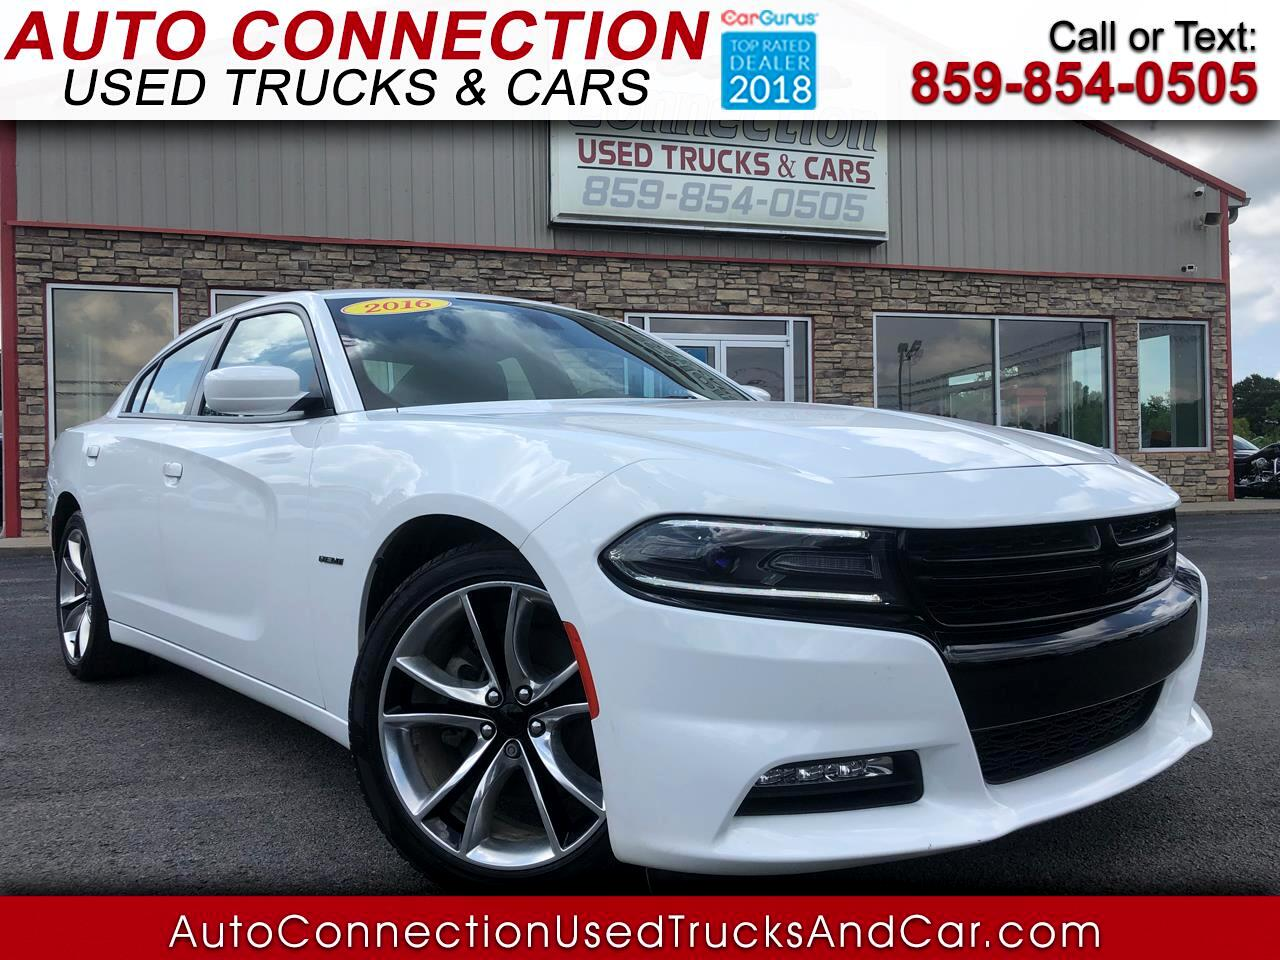 2016 Dodge Charger 4dr Sdn R/T RWD